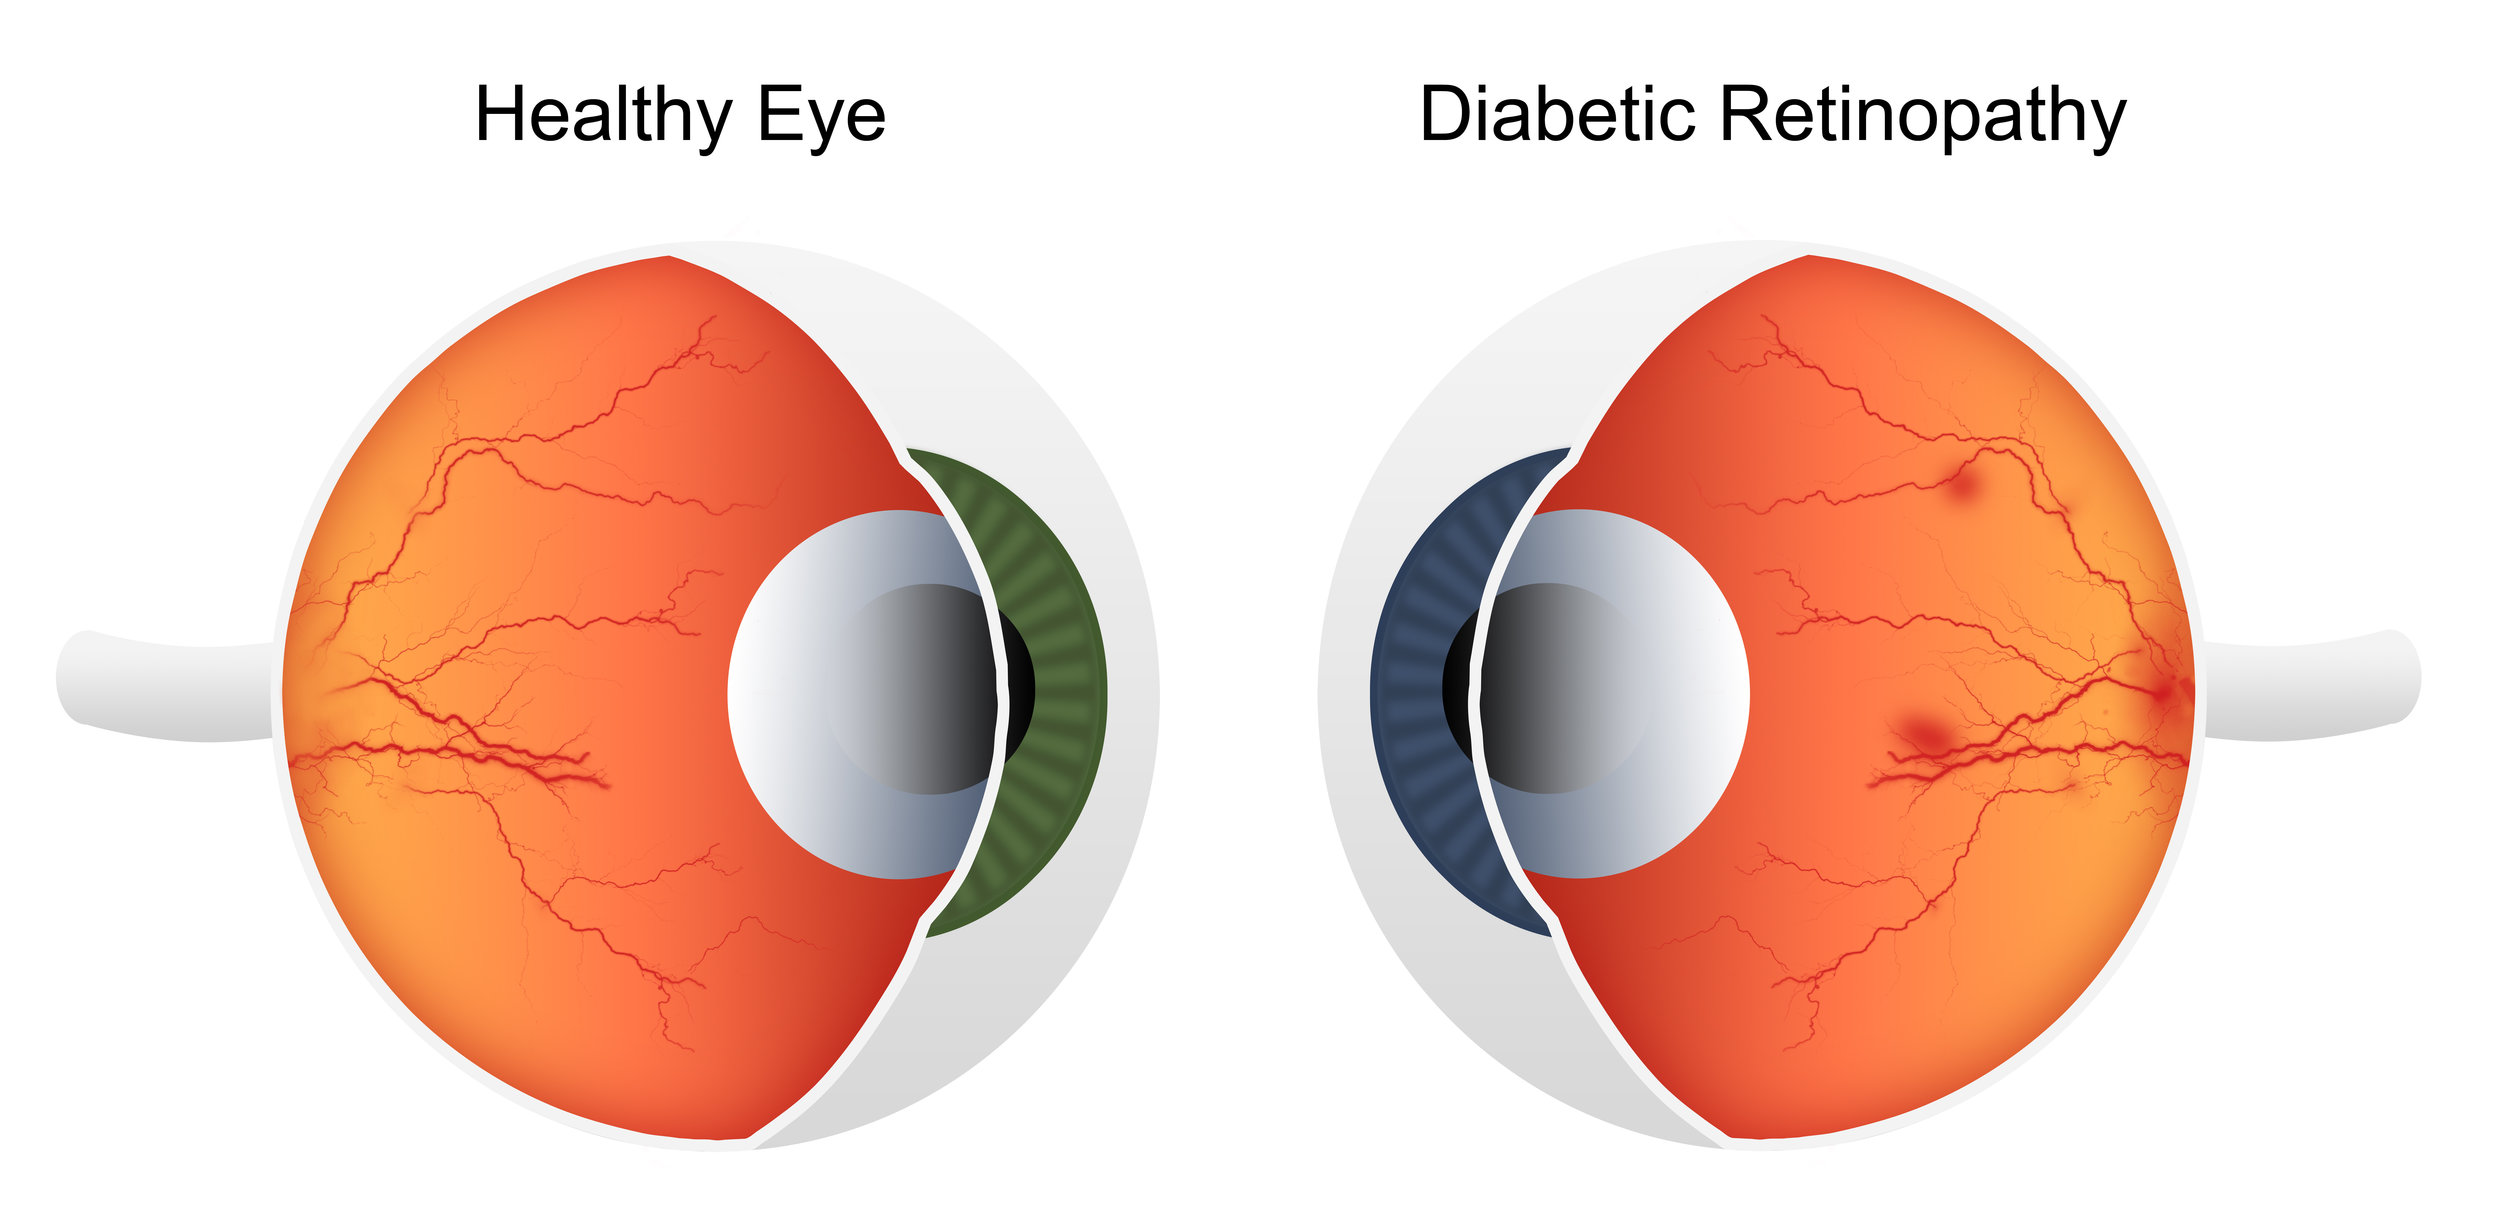 normal eye vs diabetic retinopathy eye